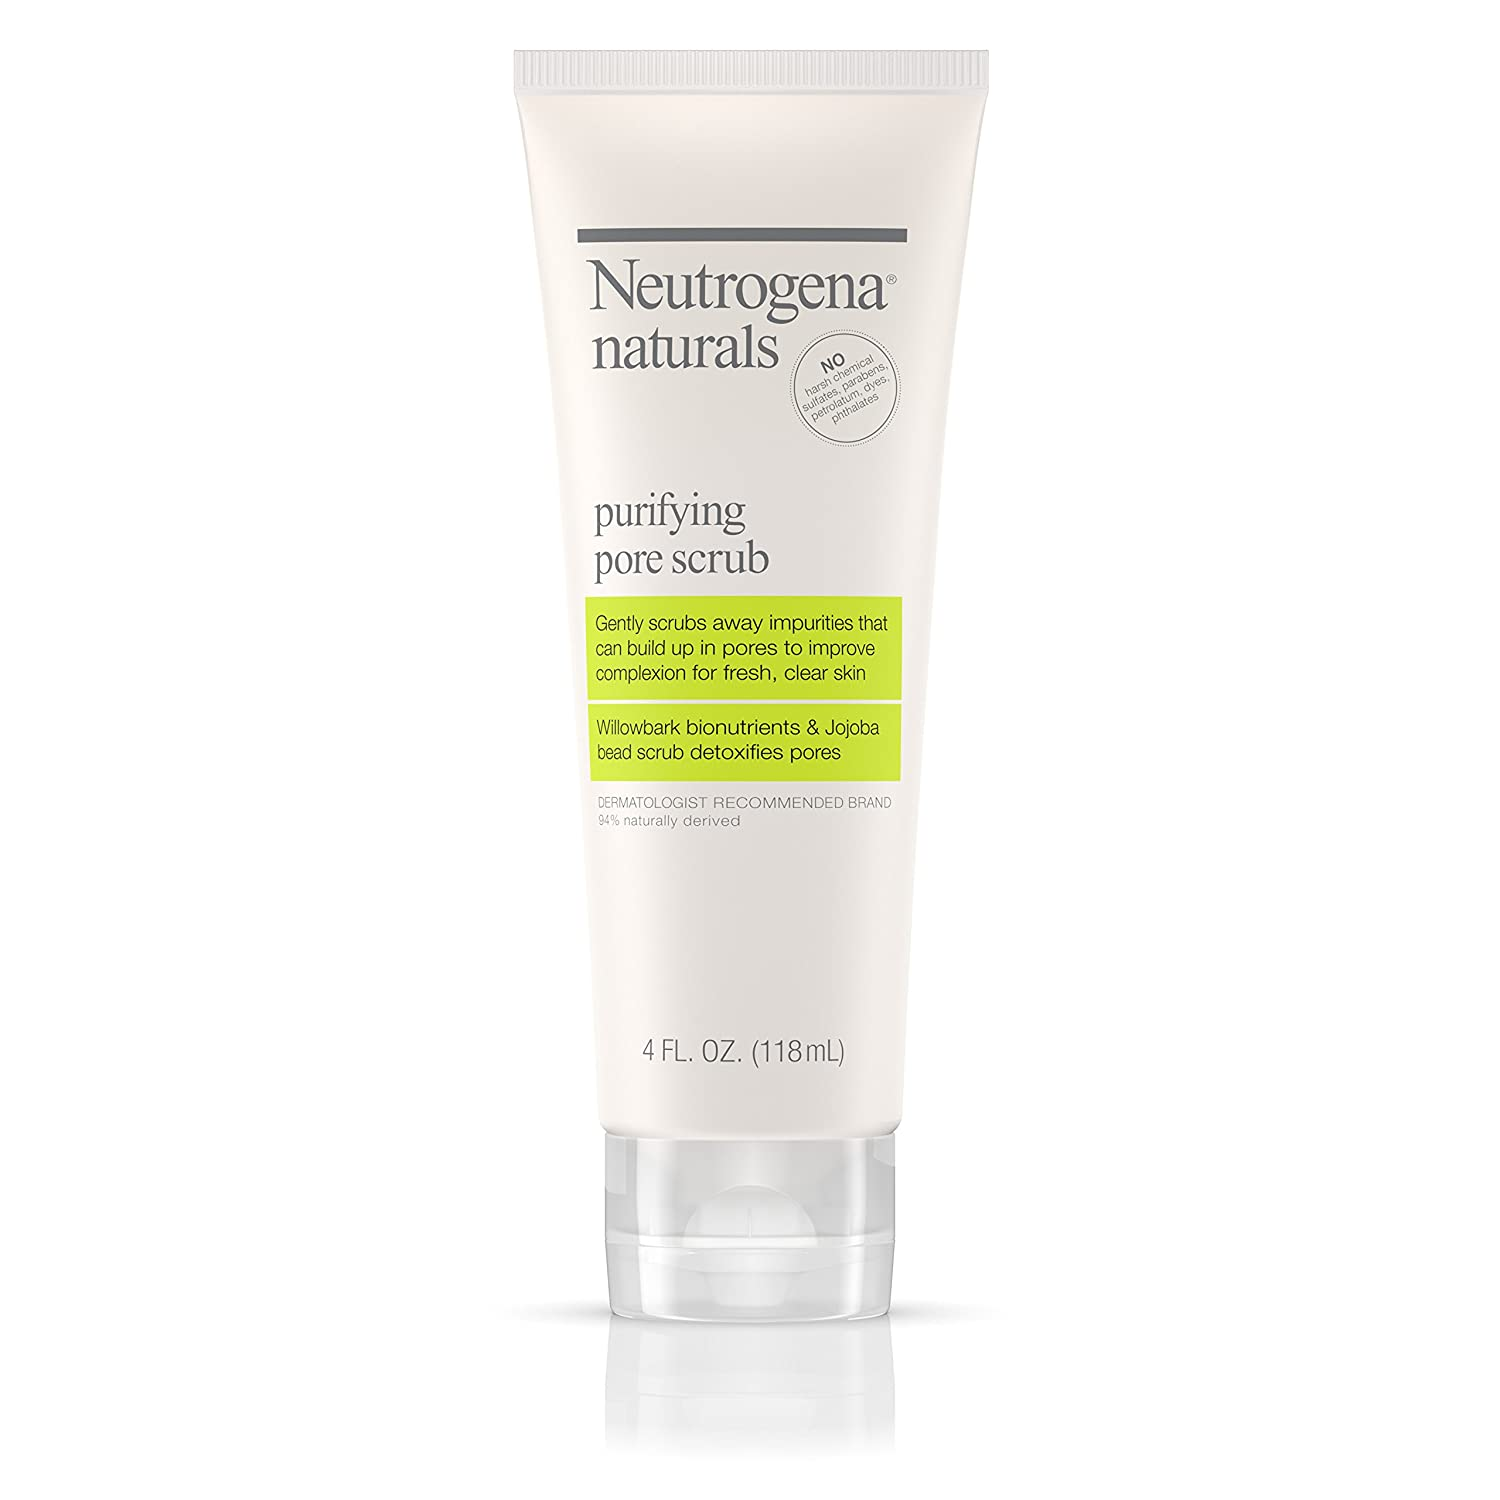 Neutrogena Naturals Purifying Pore Scrub, 4 Fluid Ounce (Pack of 3) Johnson & Johnson SLC 070501025161